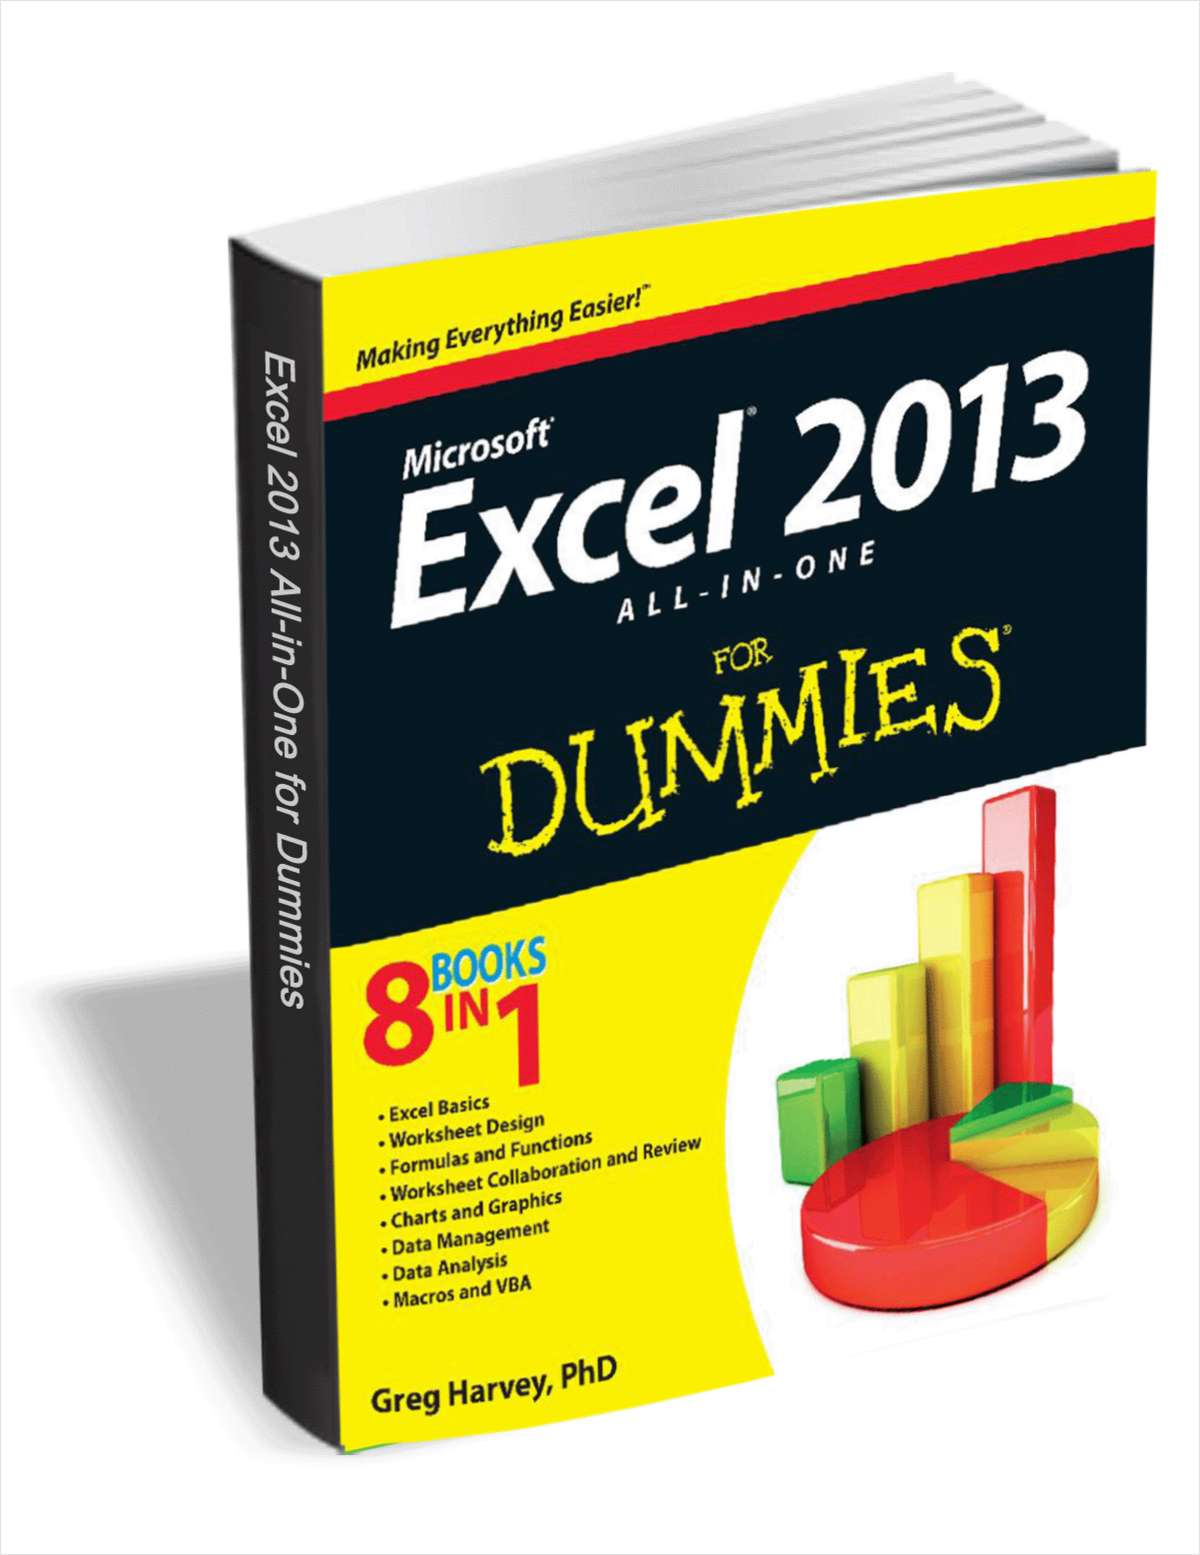 Excel 2013 All-in-One for Dummies (8 Books in 1) A $22.99 Value, FREE!